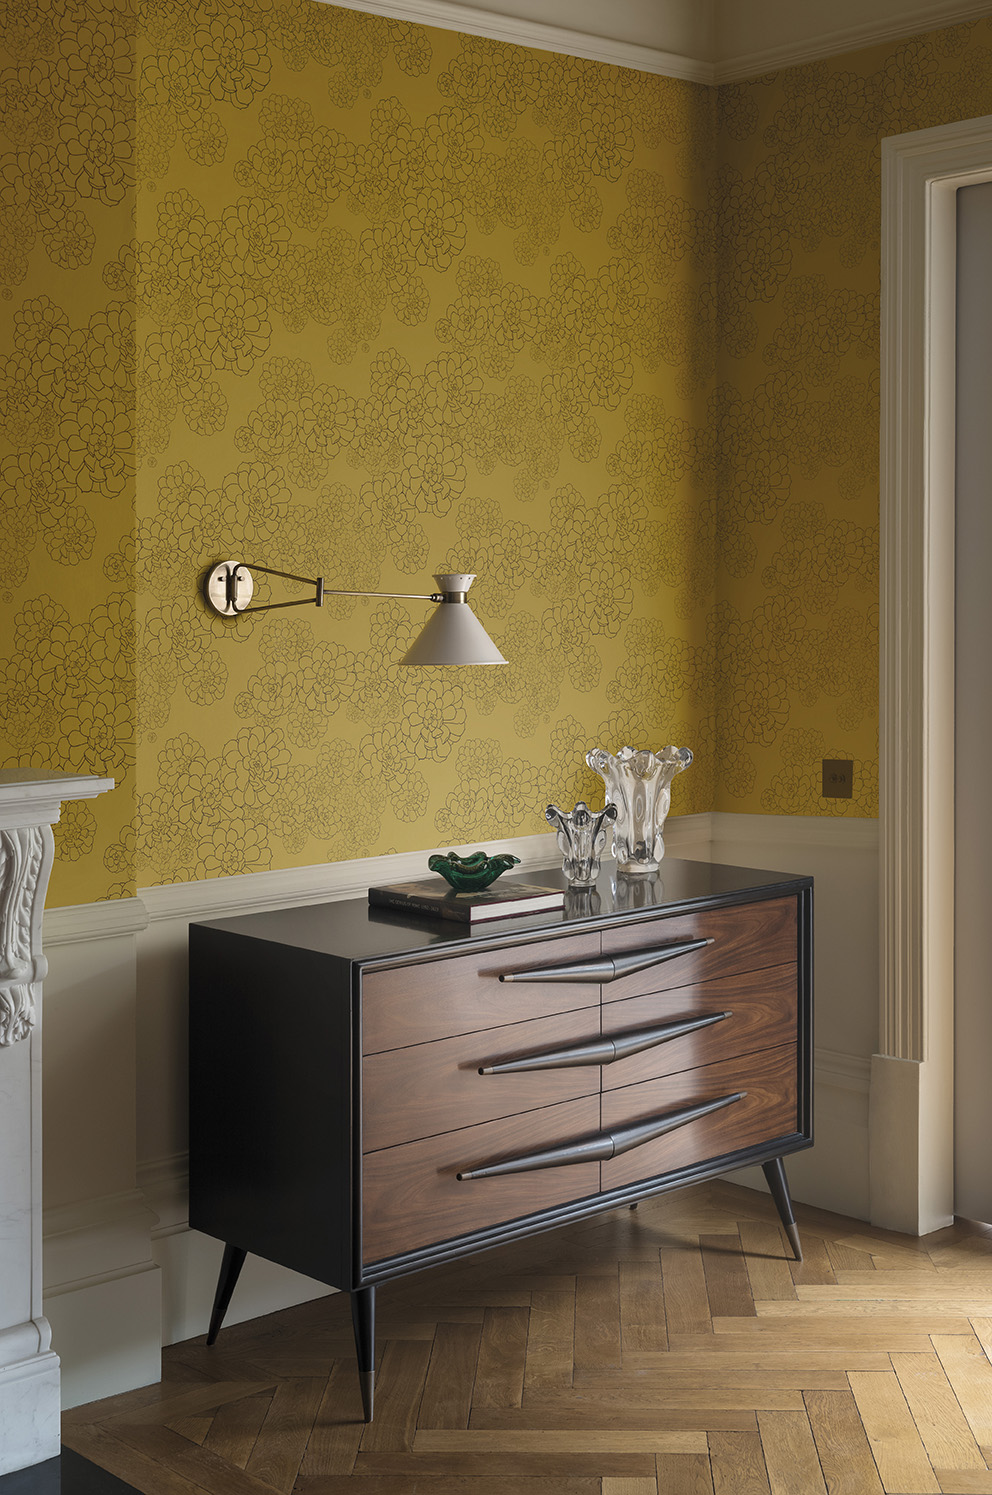 'Tresco' in collaboration with Hugo Dalton by Paint & Paper Library;Wallpaper: Aeonium – Gamboge;Paint: All Woodwork & Panelling in Ivory II 462 in Architects' Eggshell.